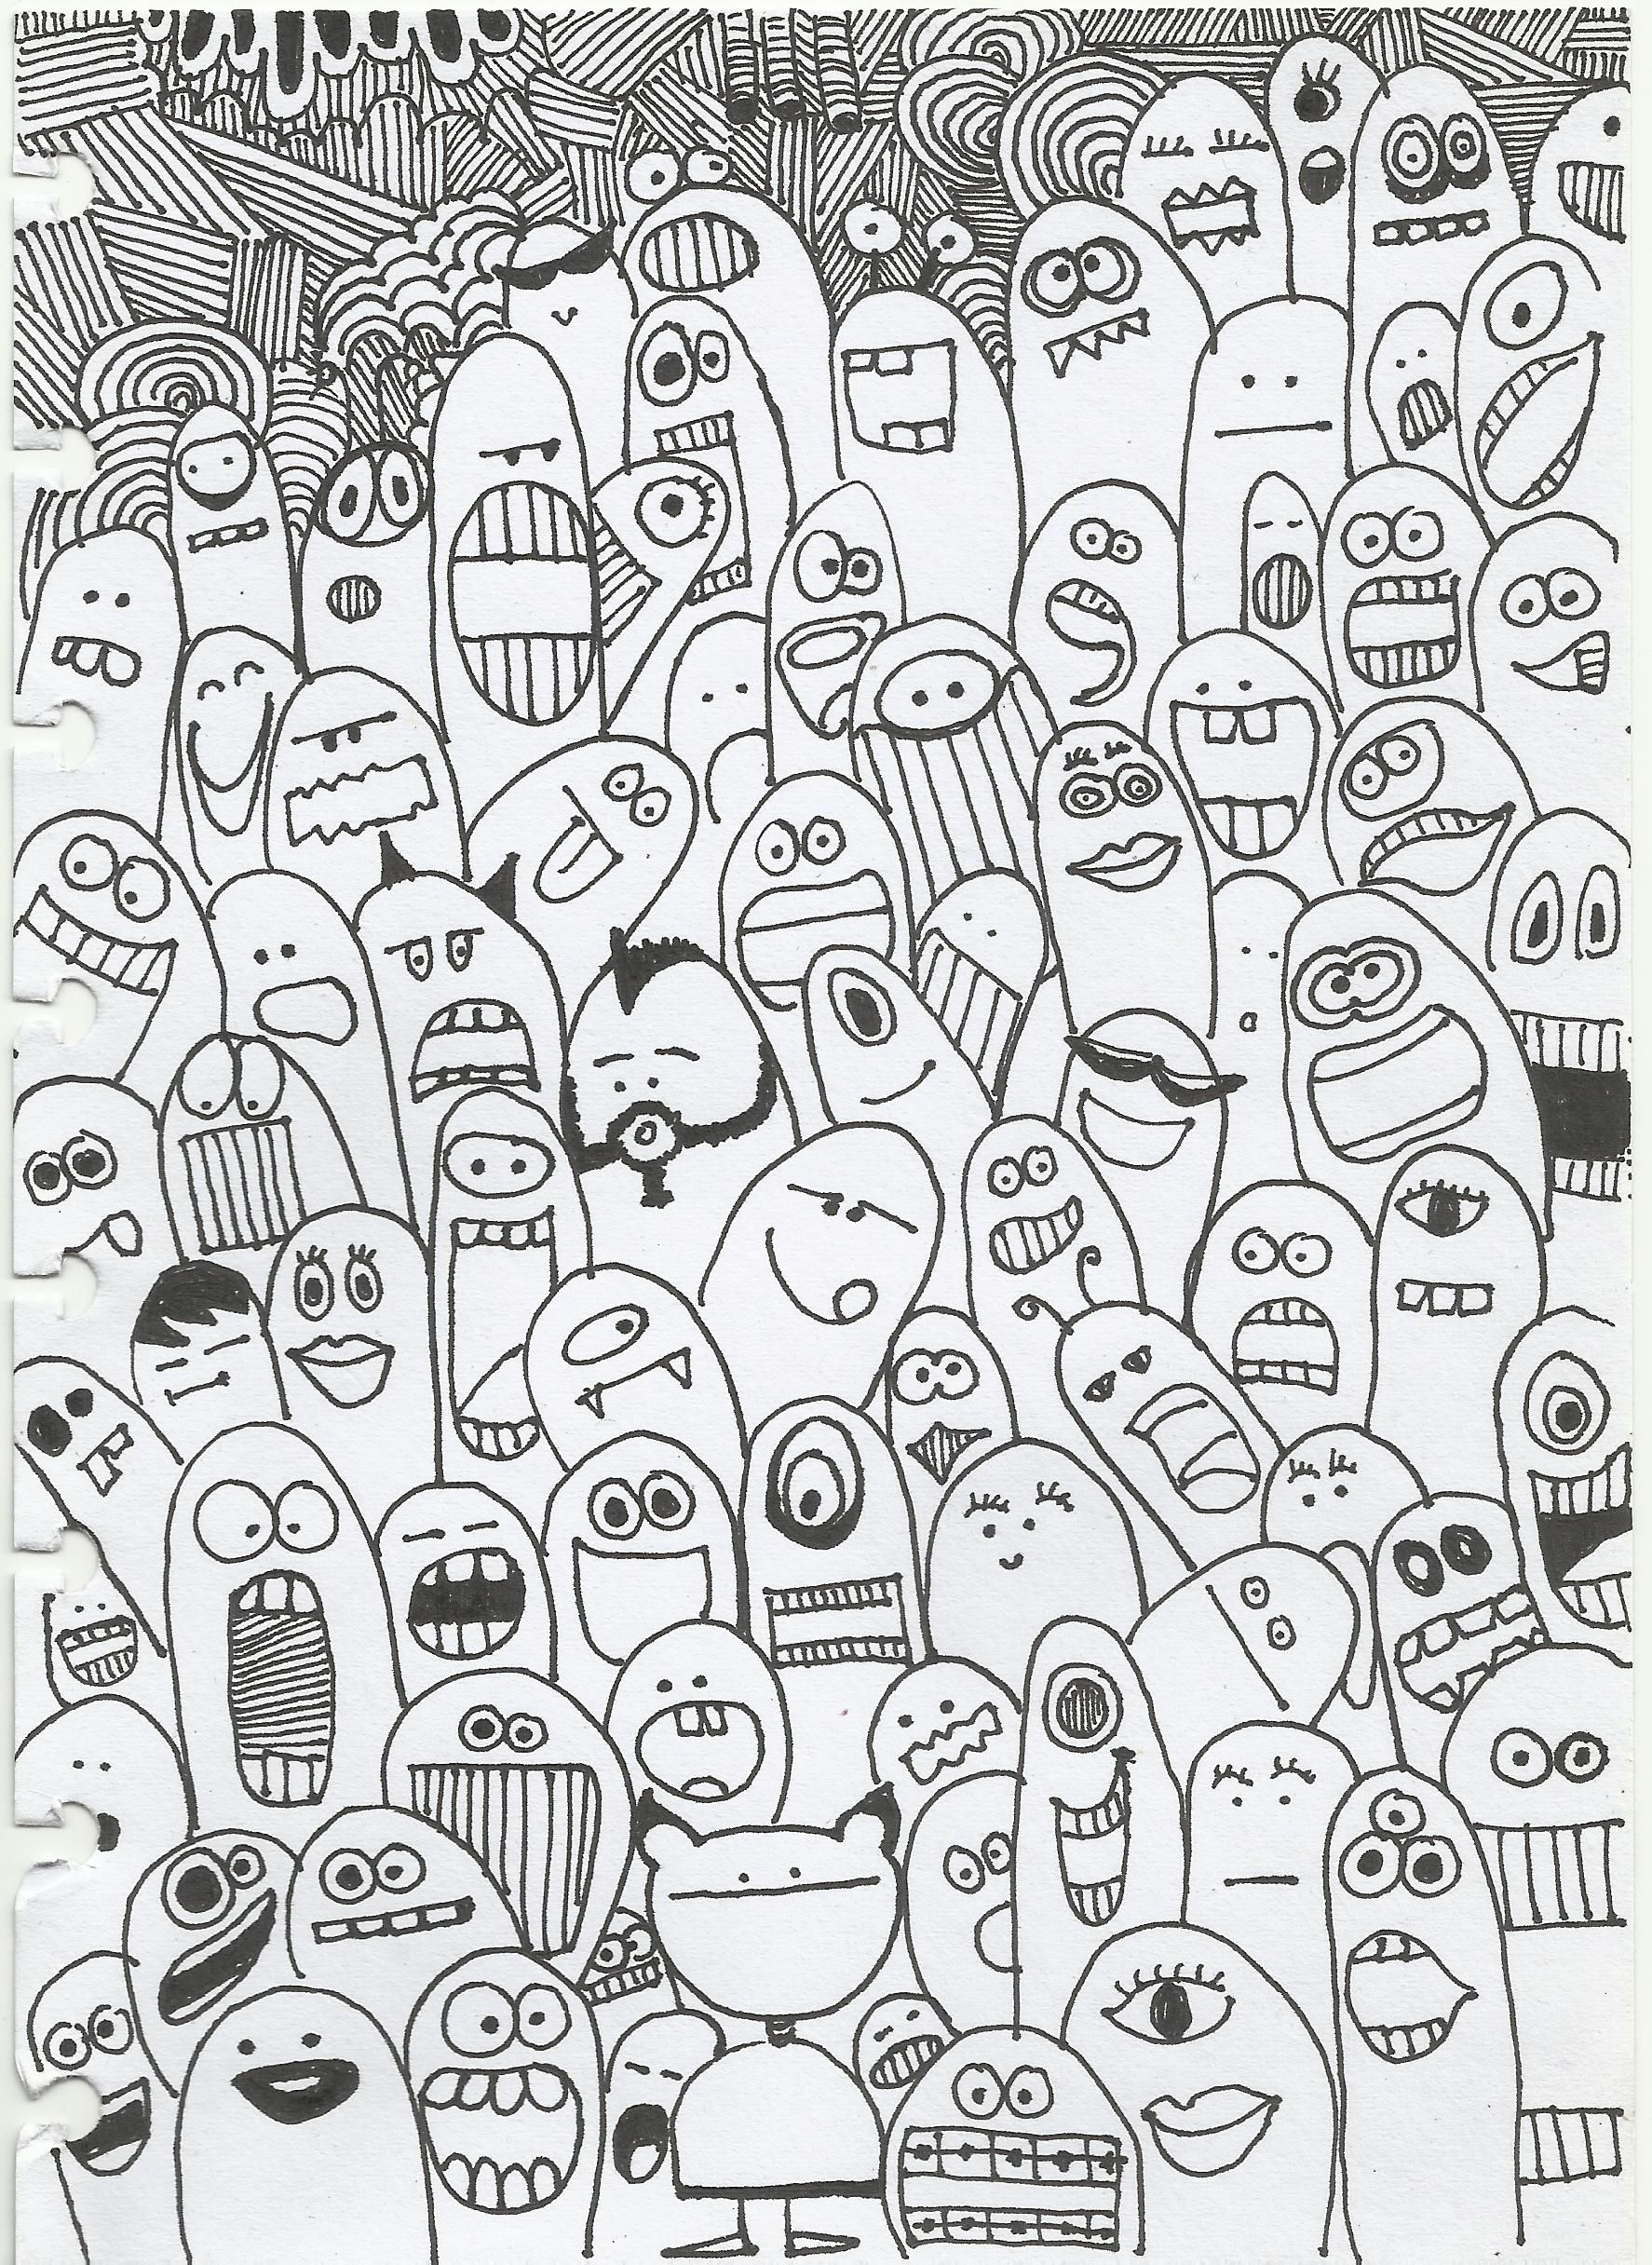 choose one for yourself doodling monster faces